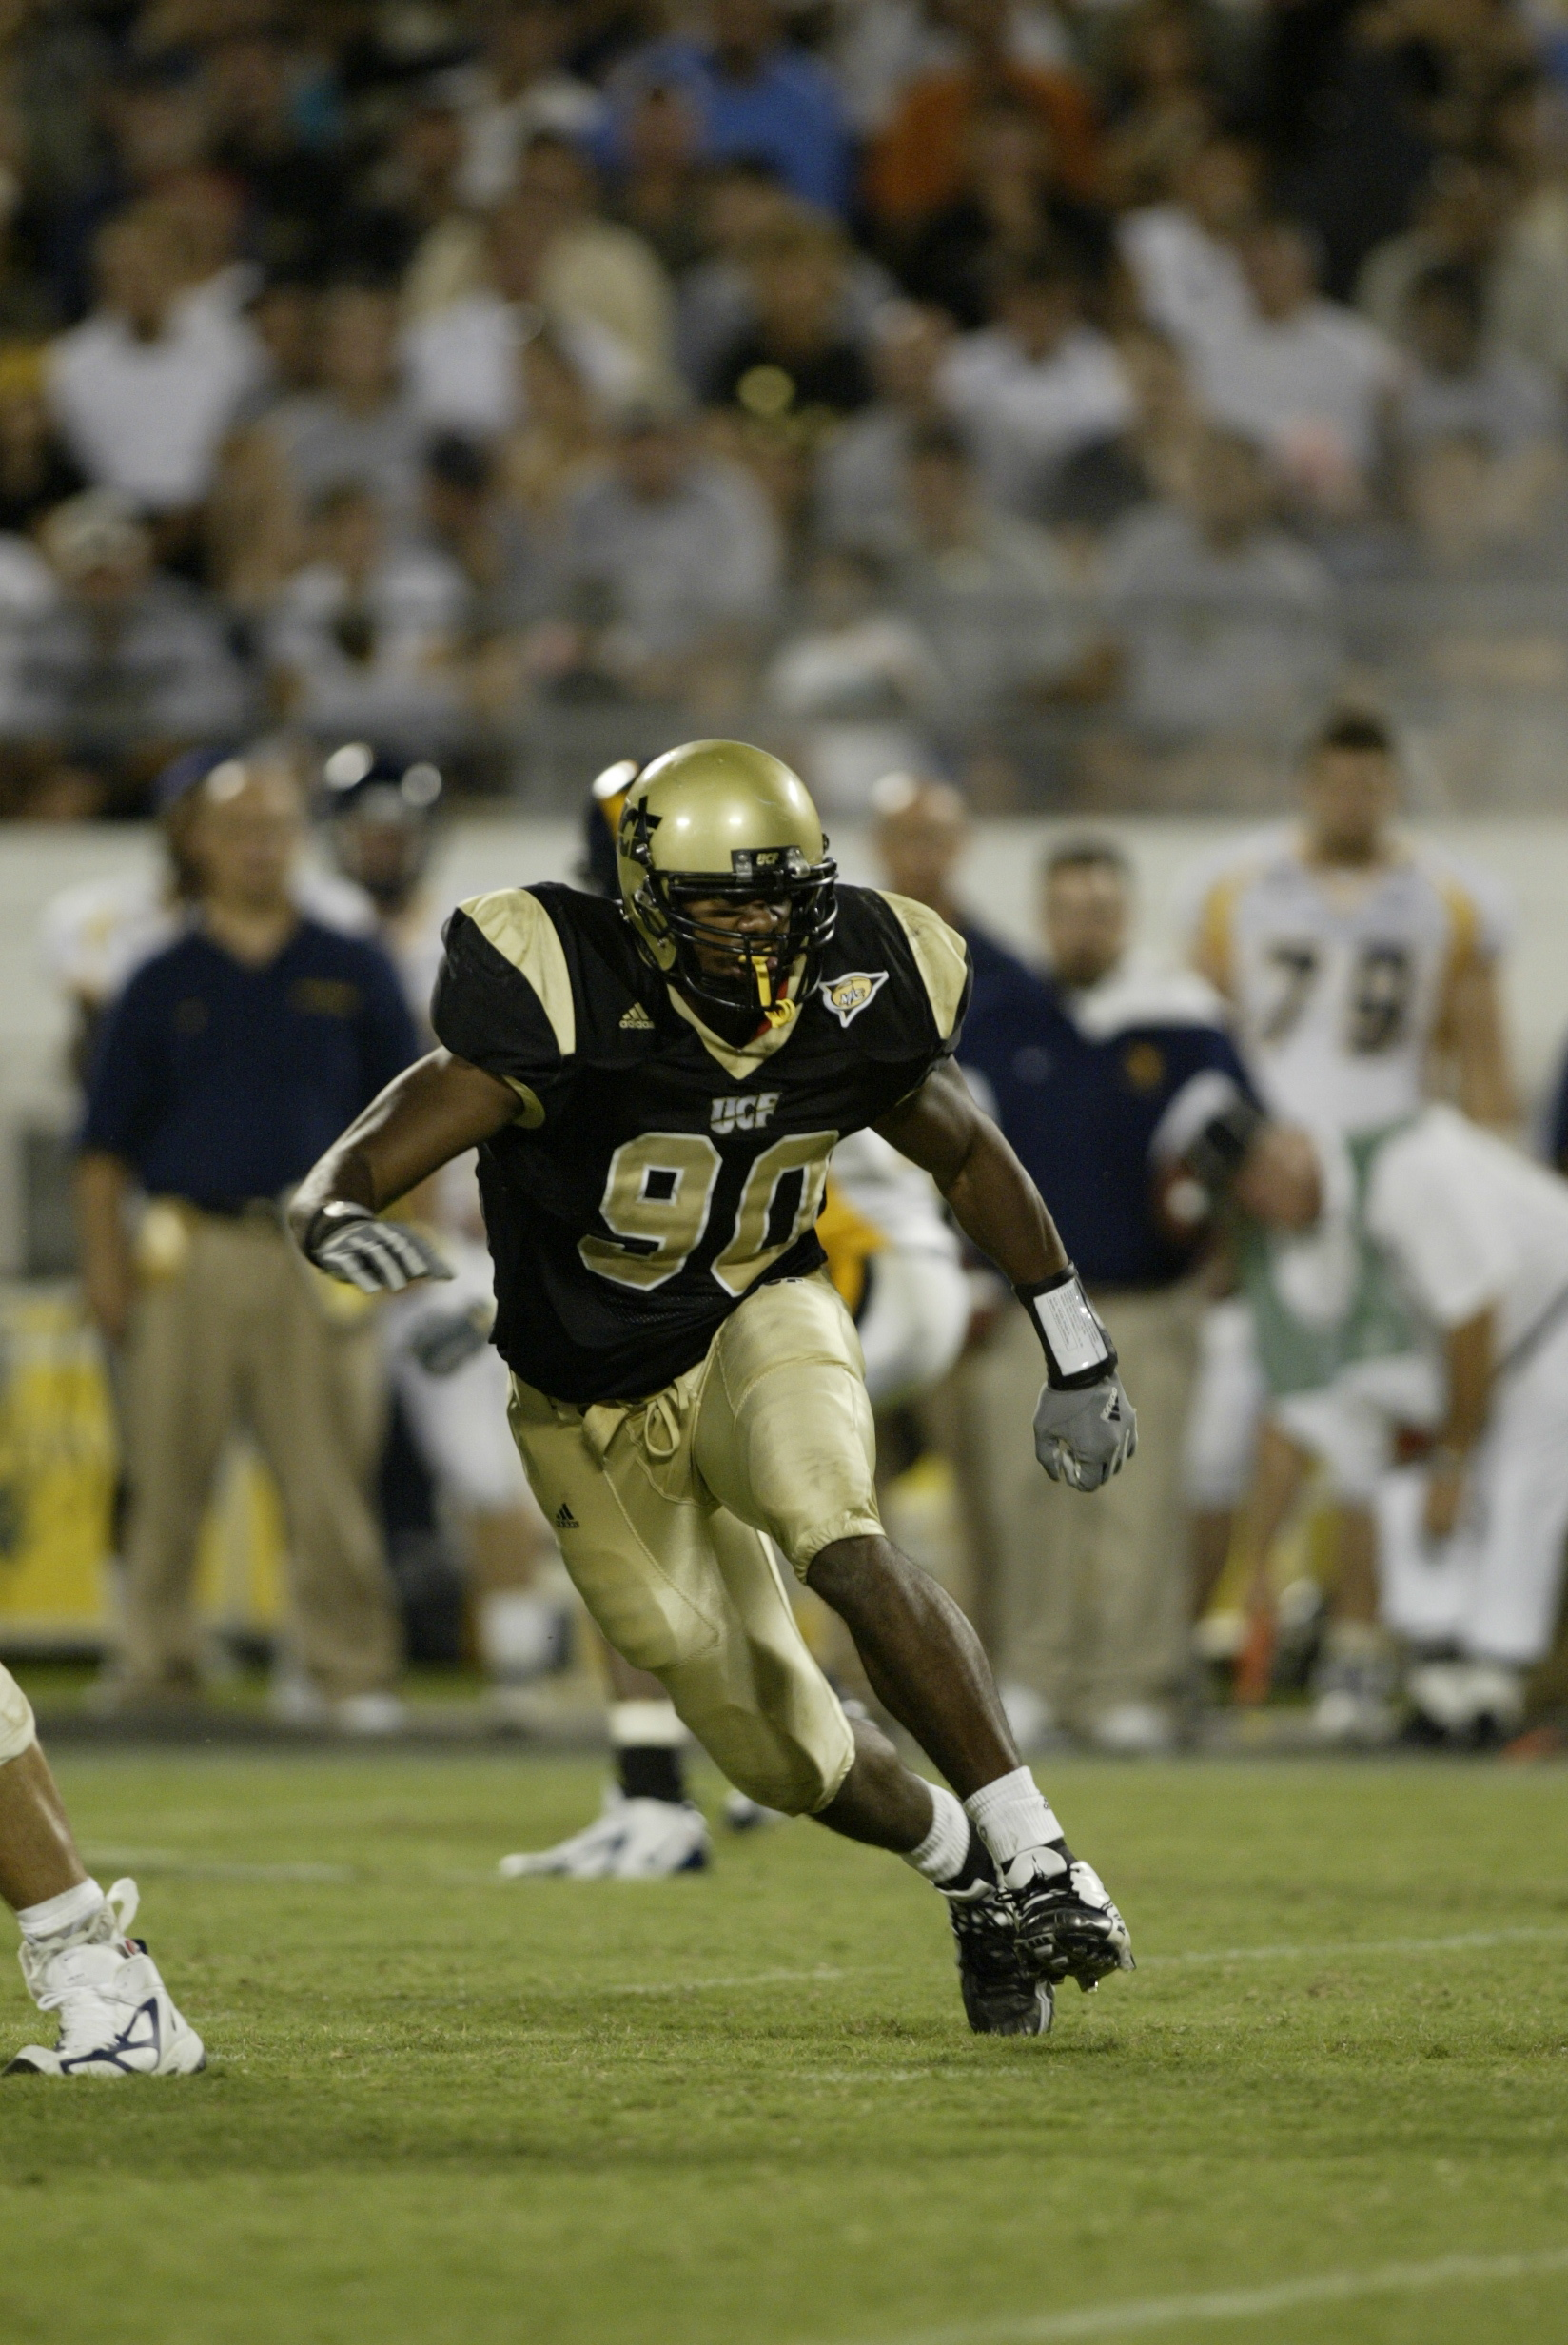 September 11th 2004 University of Central Florida Defensive End